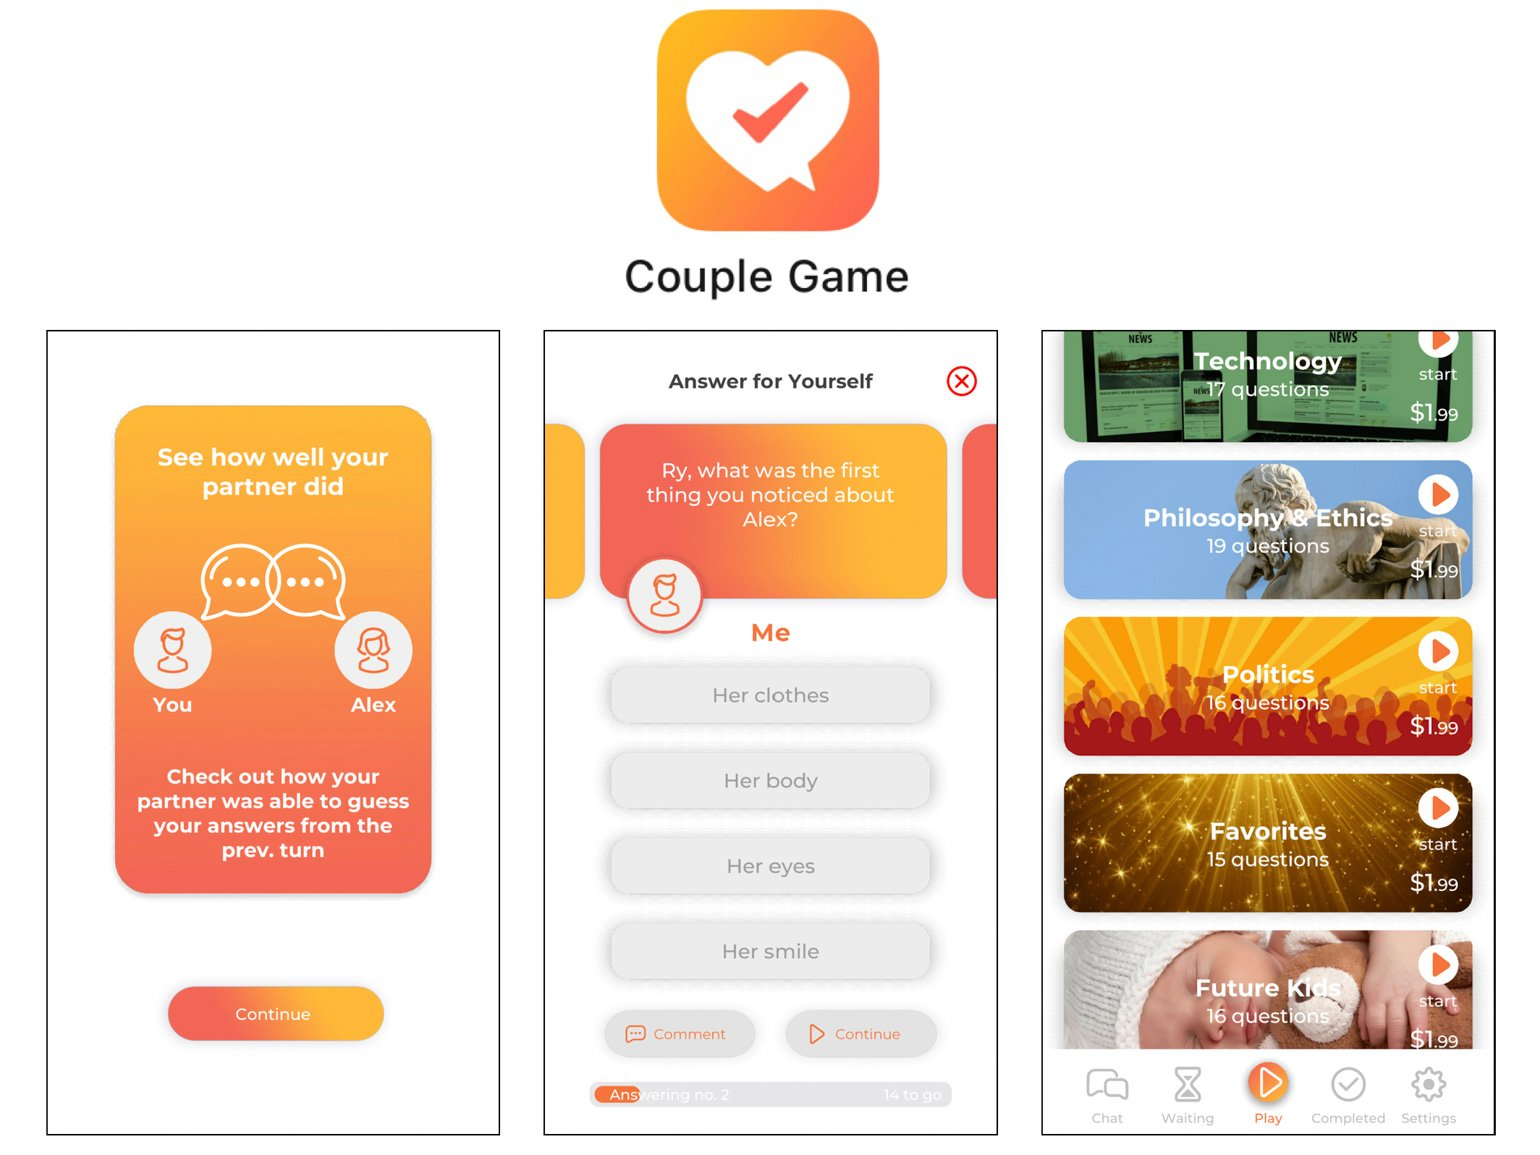 Couple Game Best Apps for Married Couples Ryan and Alex Duo Life